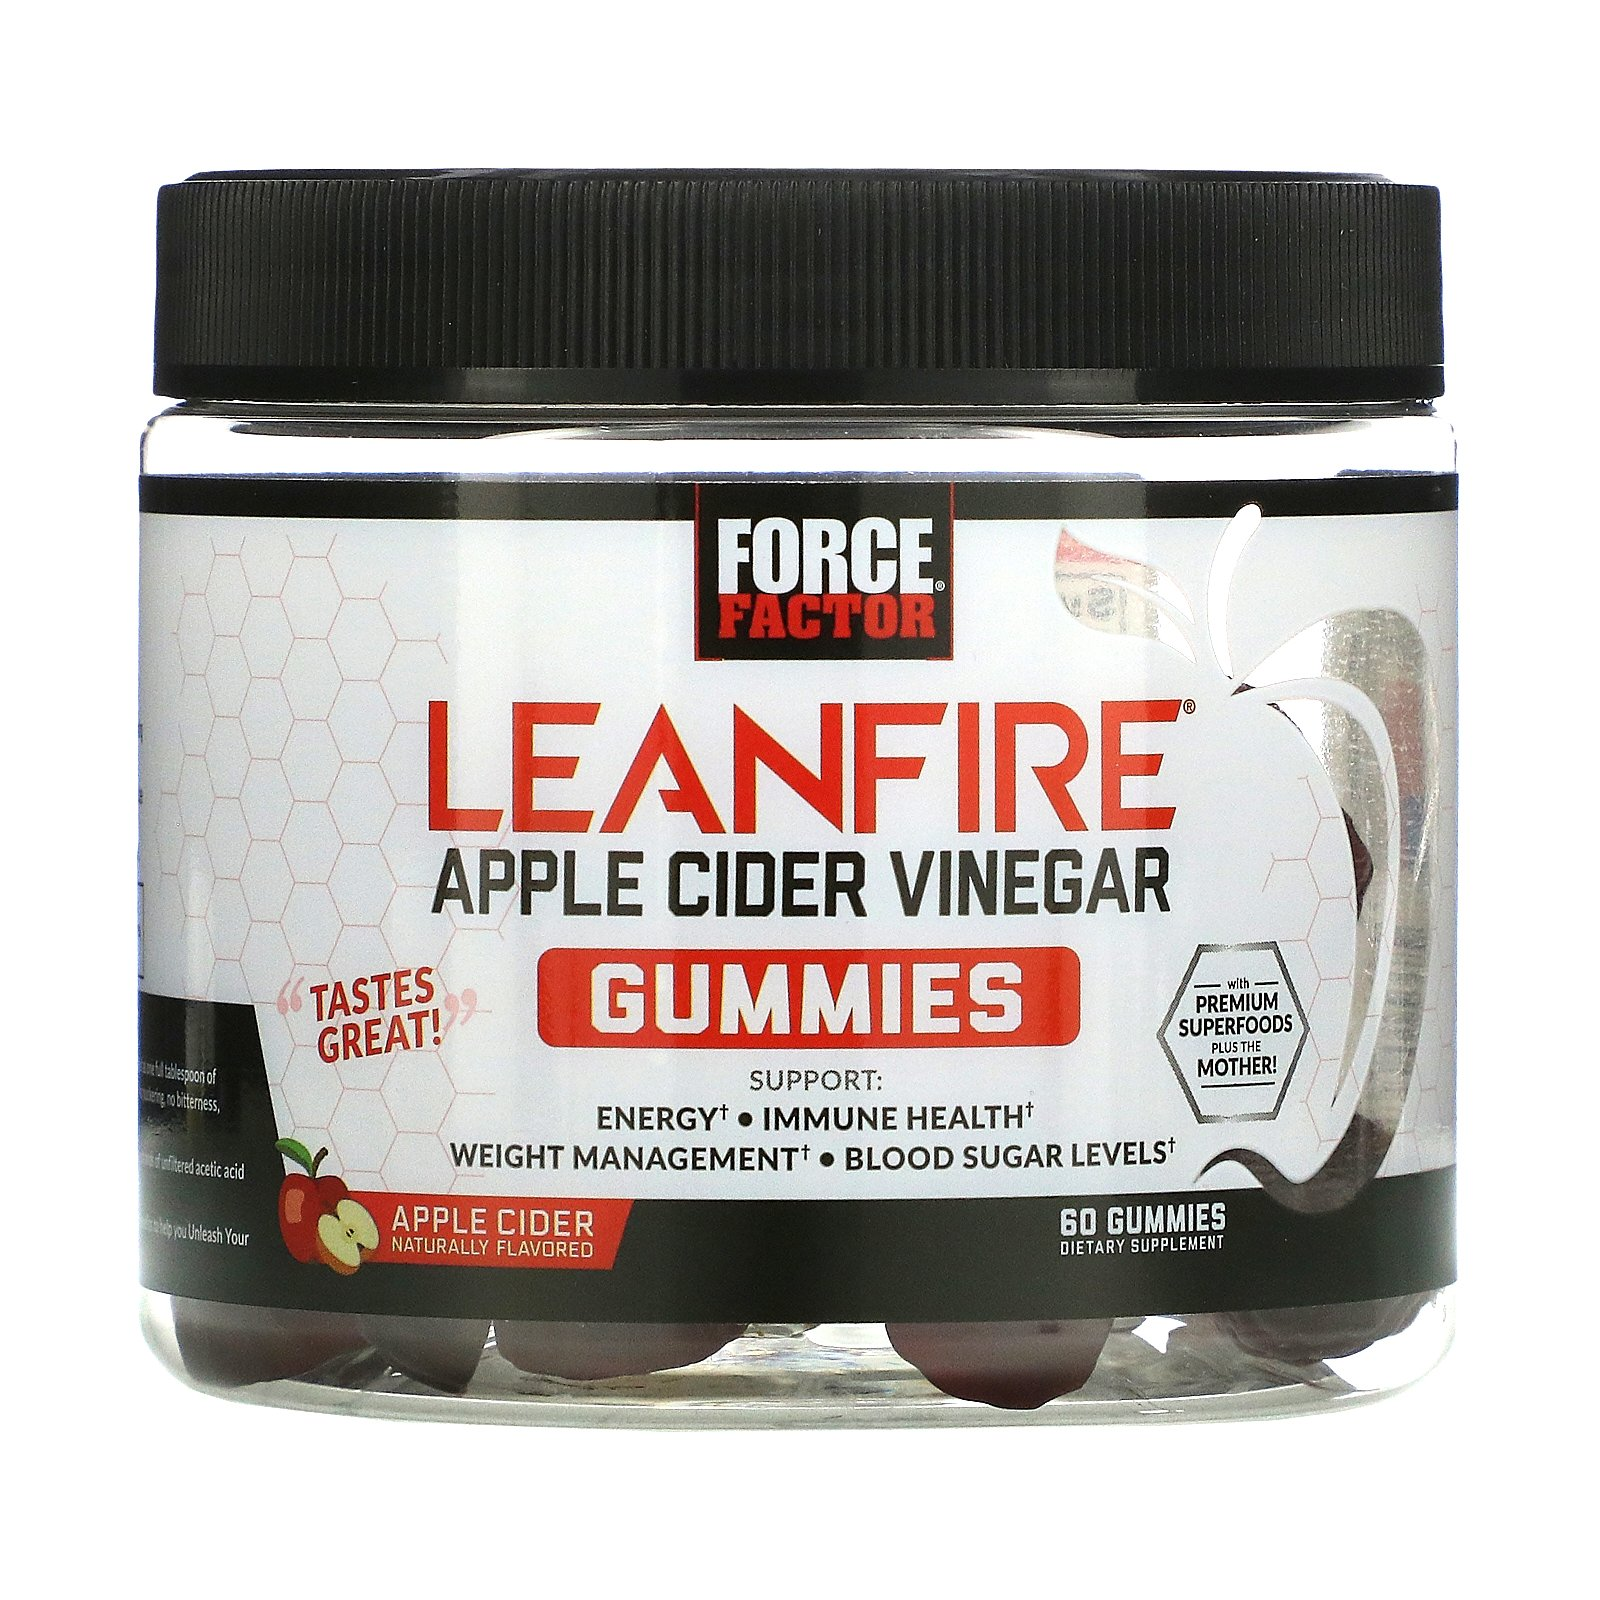 Force Factor, LeanFIre, Apple Cider Vinegar Gummies with Mother, Apple Cider Naturally Flavored, 60 Gummies